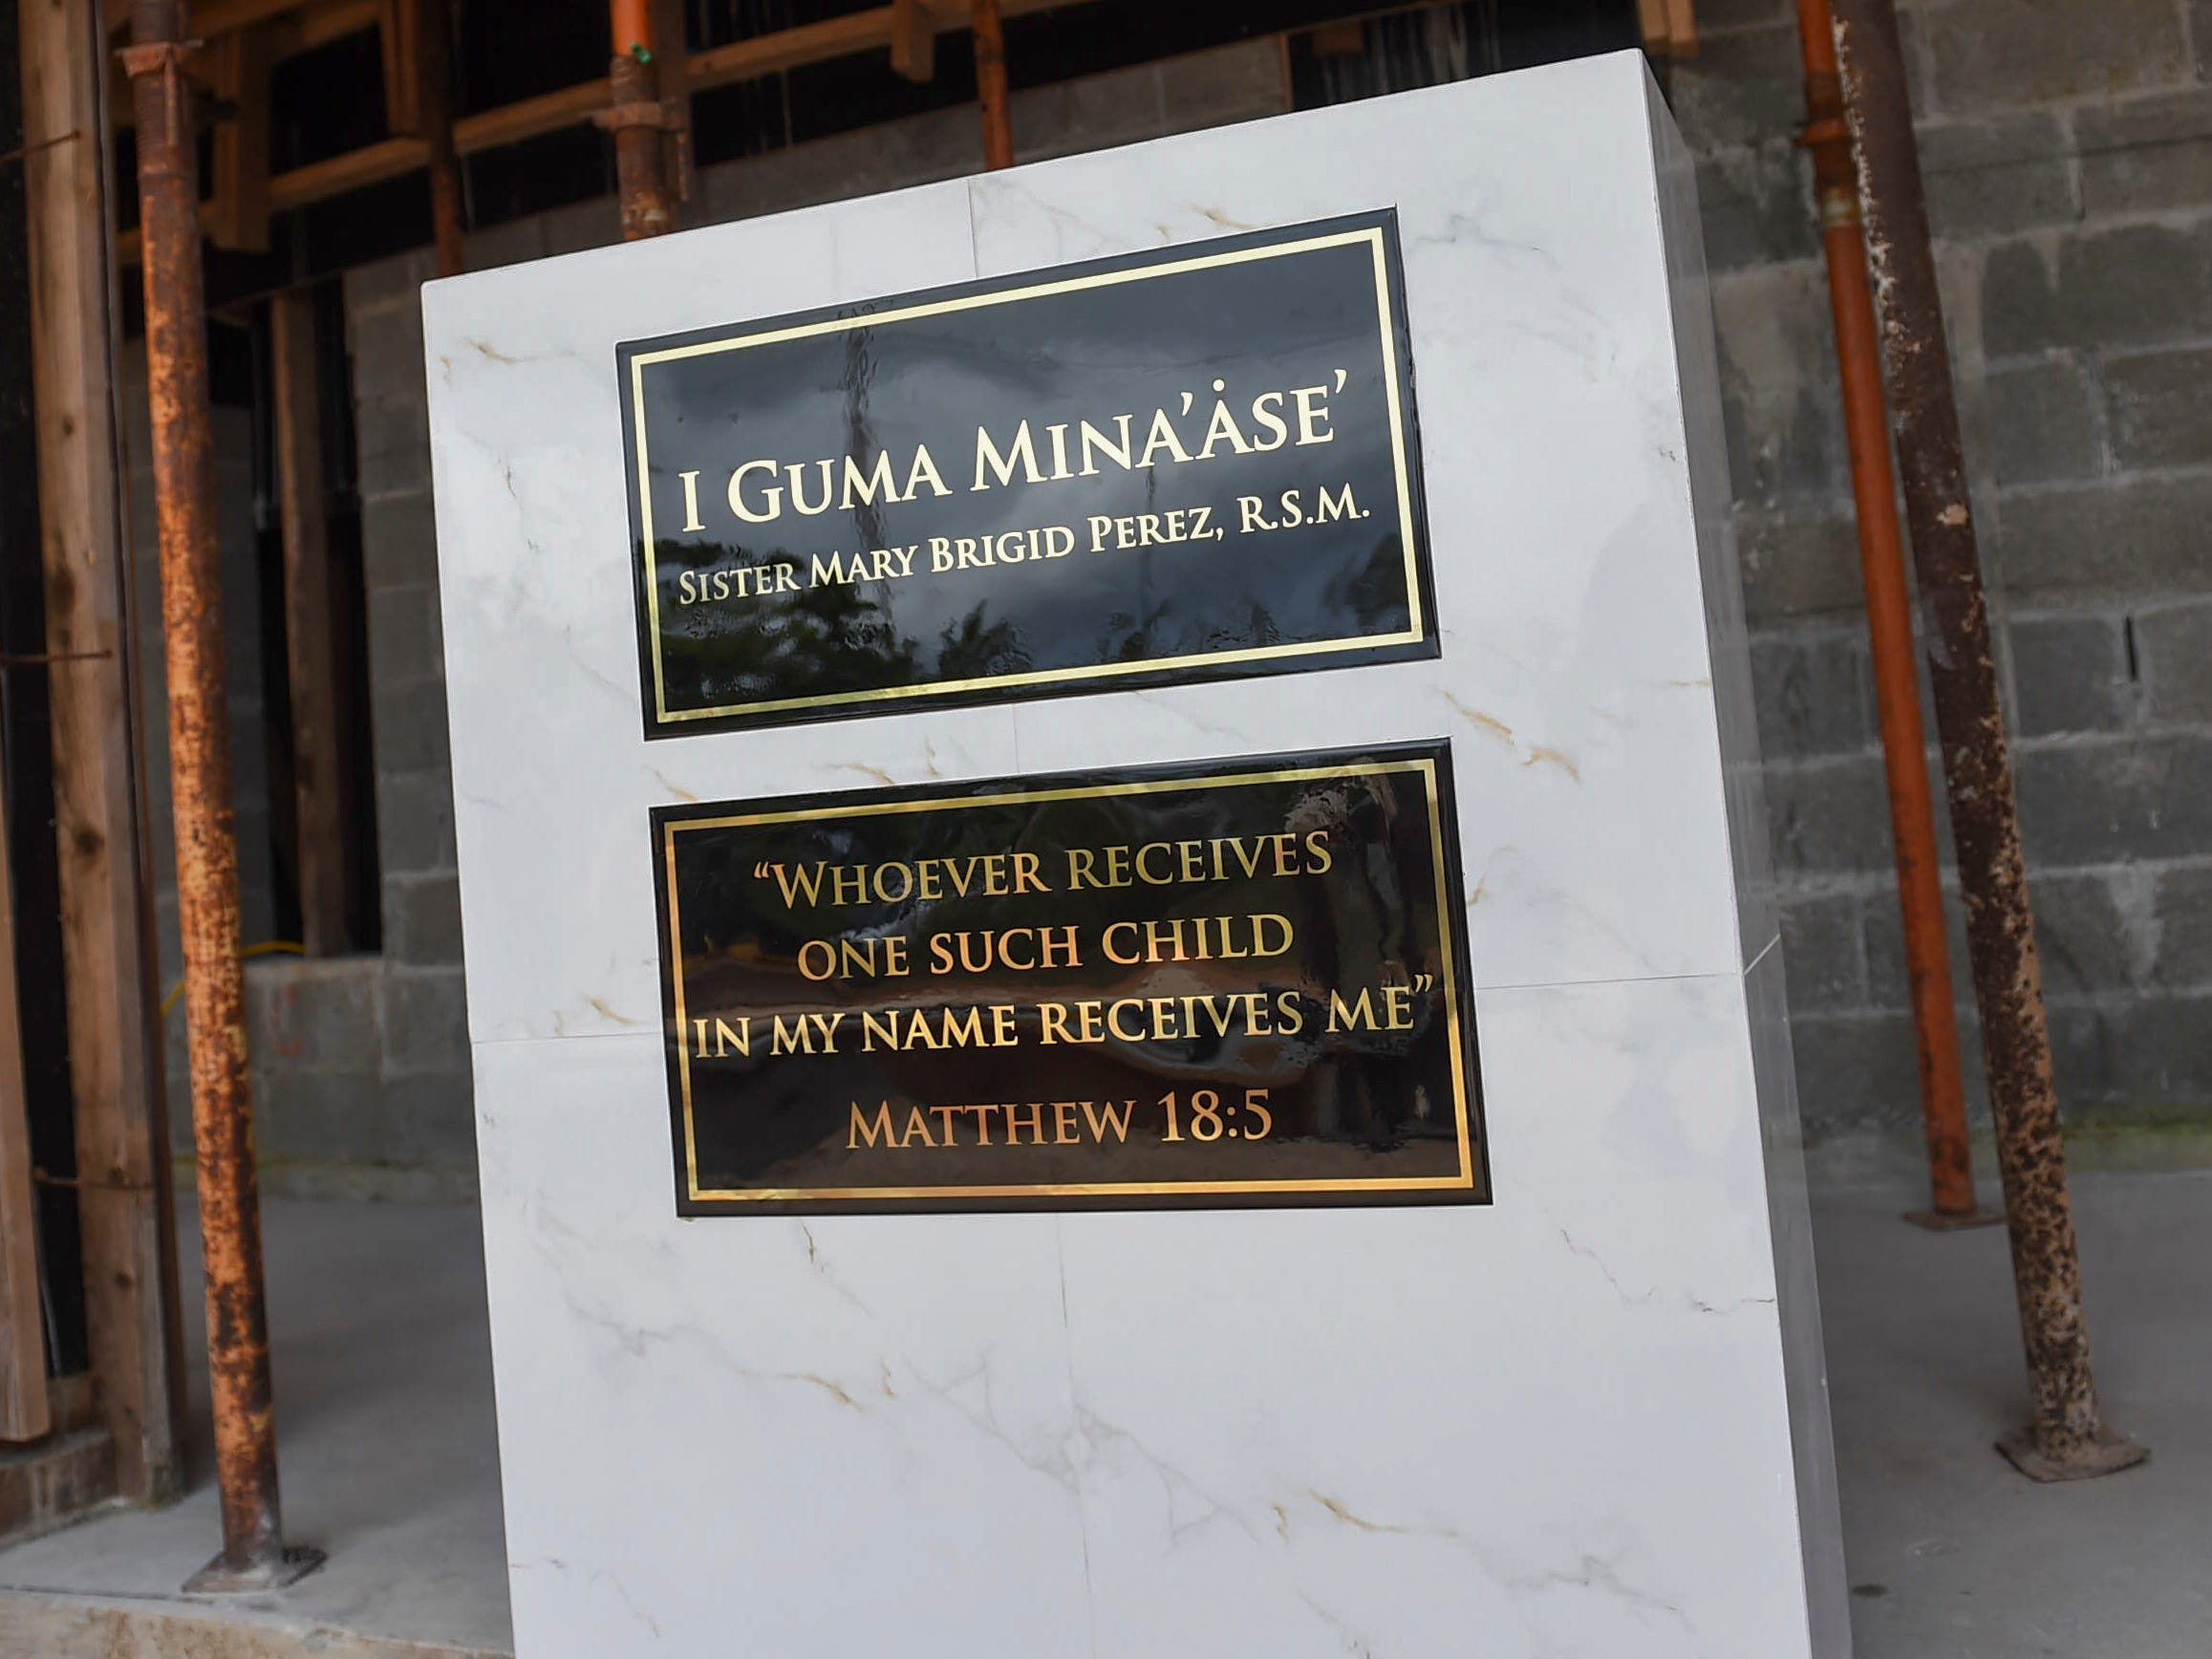 A dedication plaque is unveiled during a ceremony for the redesignation of the former Rigålu House to I Guma Mina'åse' Sister Mary Brigid Perez, R.S.M. in Barrigada on Dec. 31, 2018.